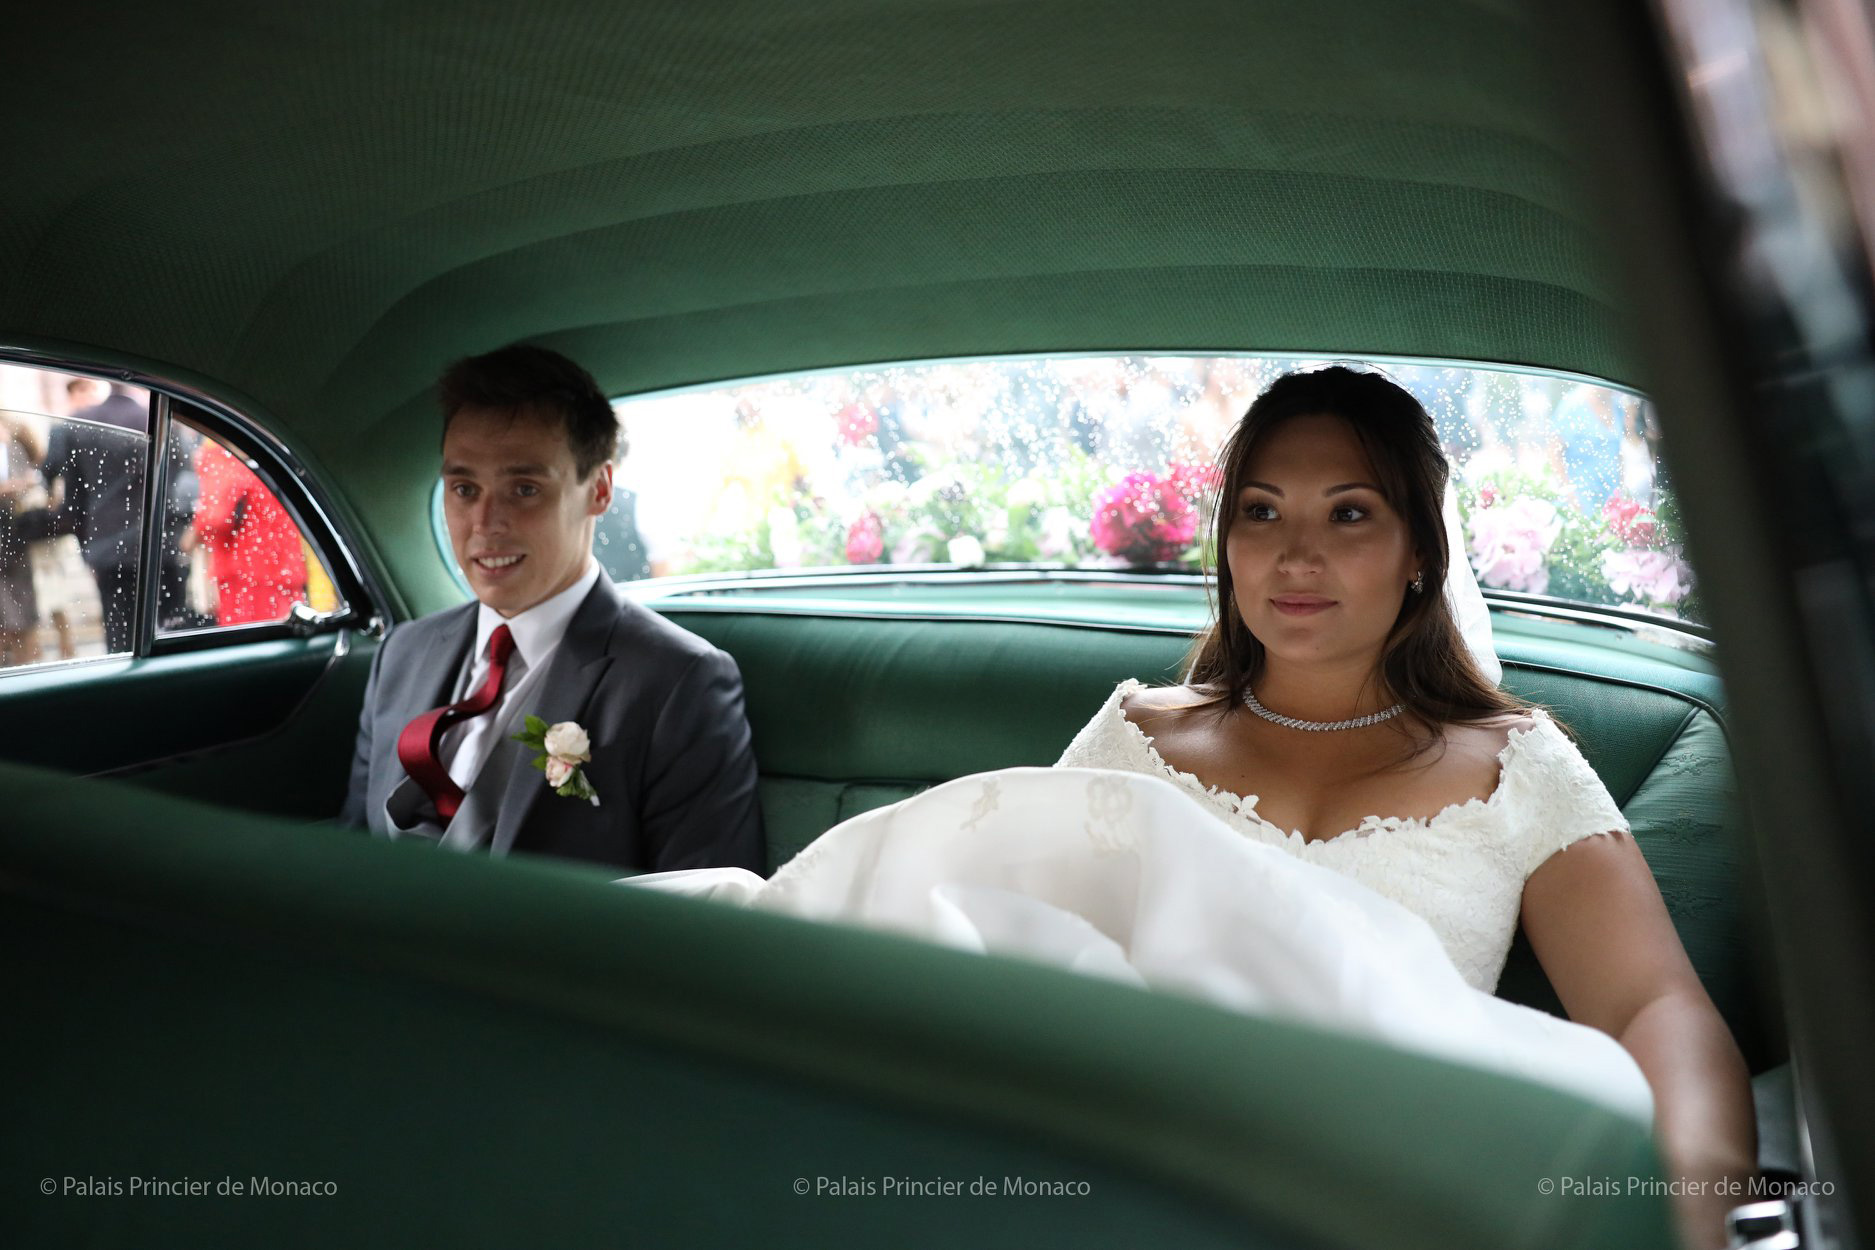 Friday, July 26th, Mr. Louis Ducruet, the oldest son of s.a.s. princess Stephanie and m. Daniel Ducruet, married miss Marie Chevallier at a civil ceremony celebrated at the city hall of Monaco by m. Georges Marsan, the mayor.